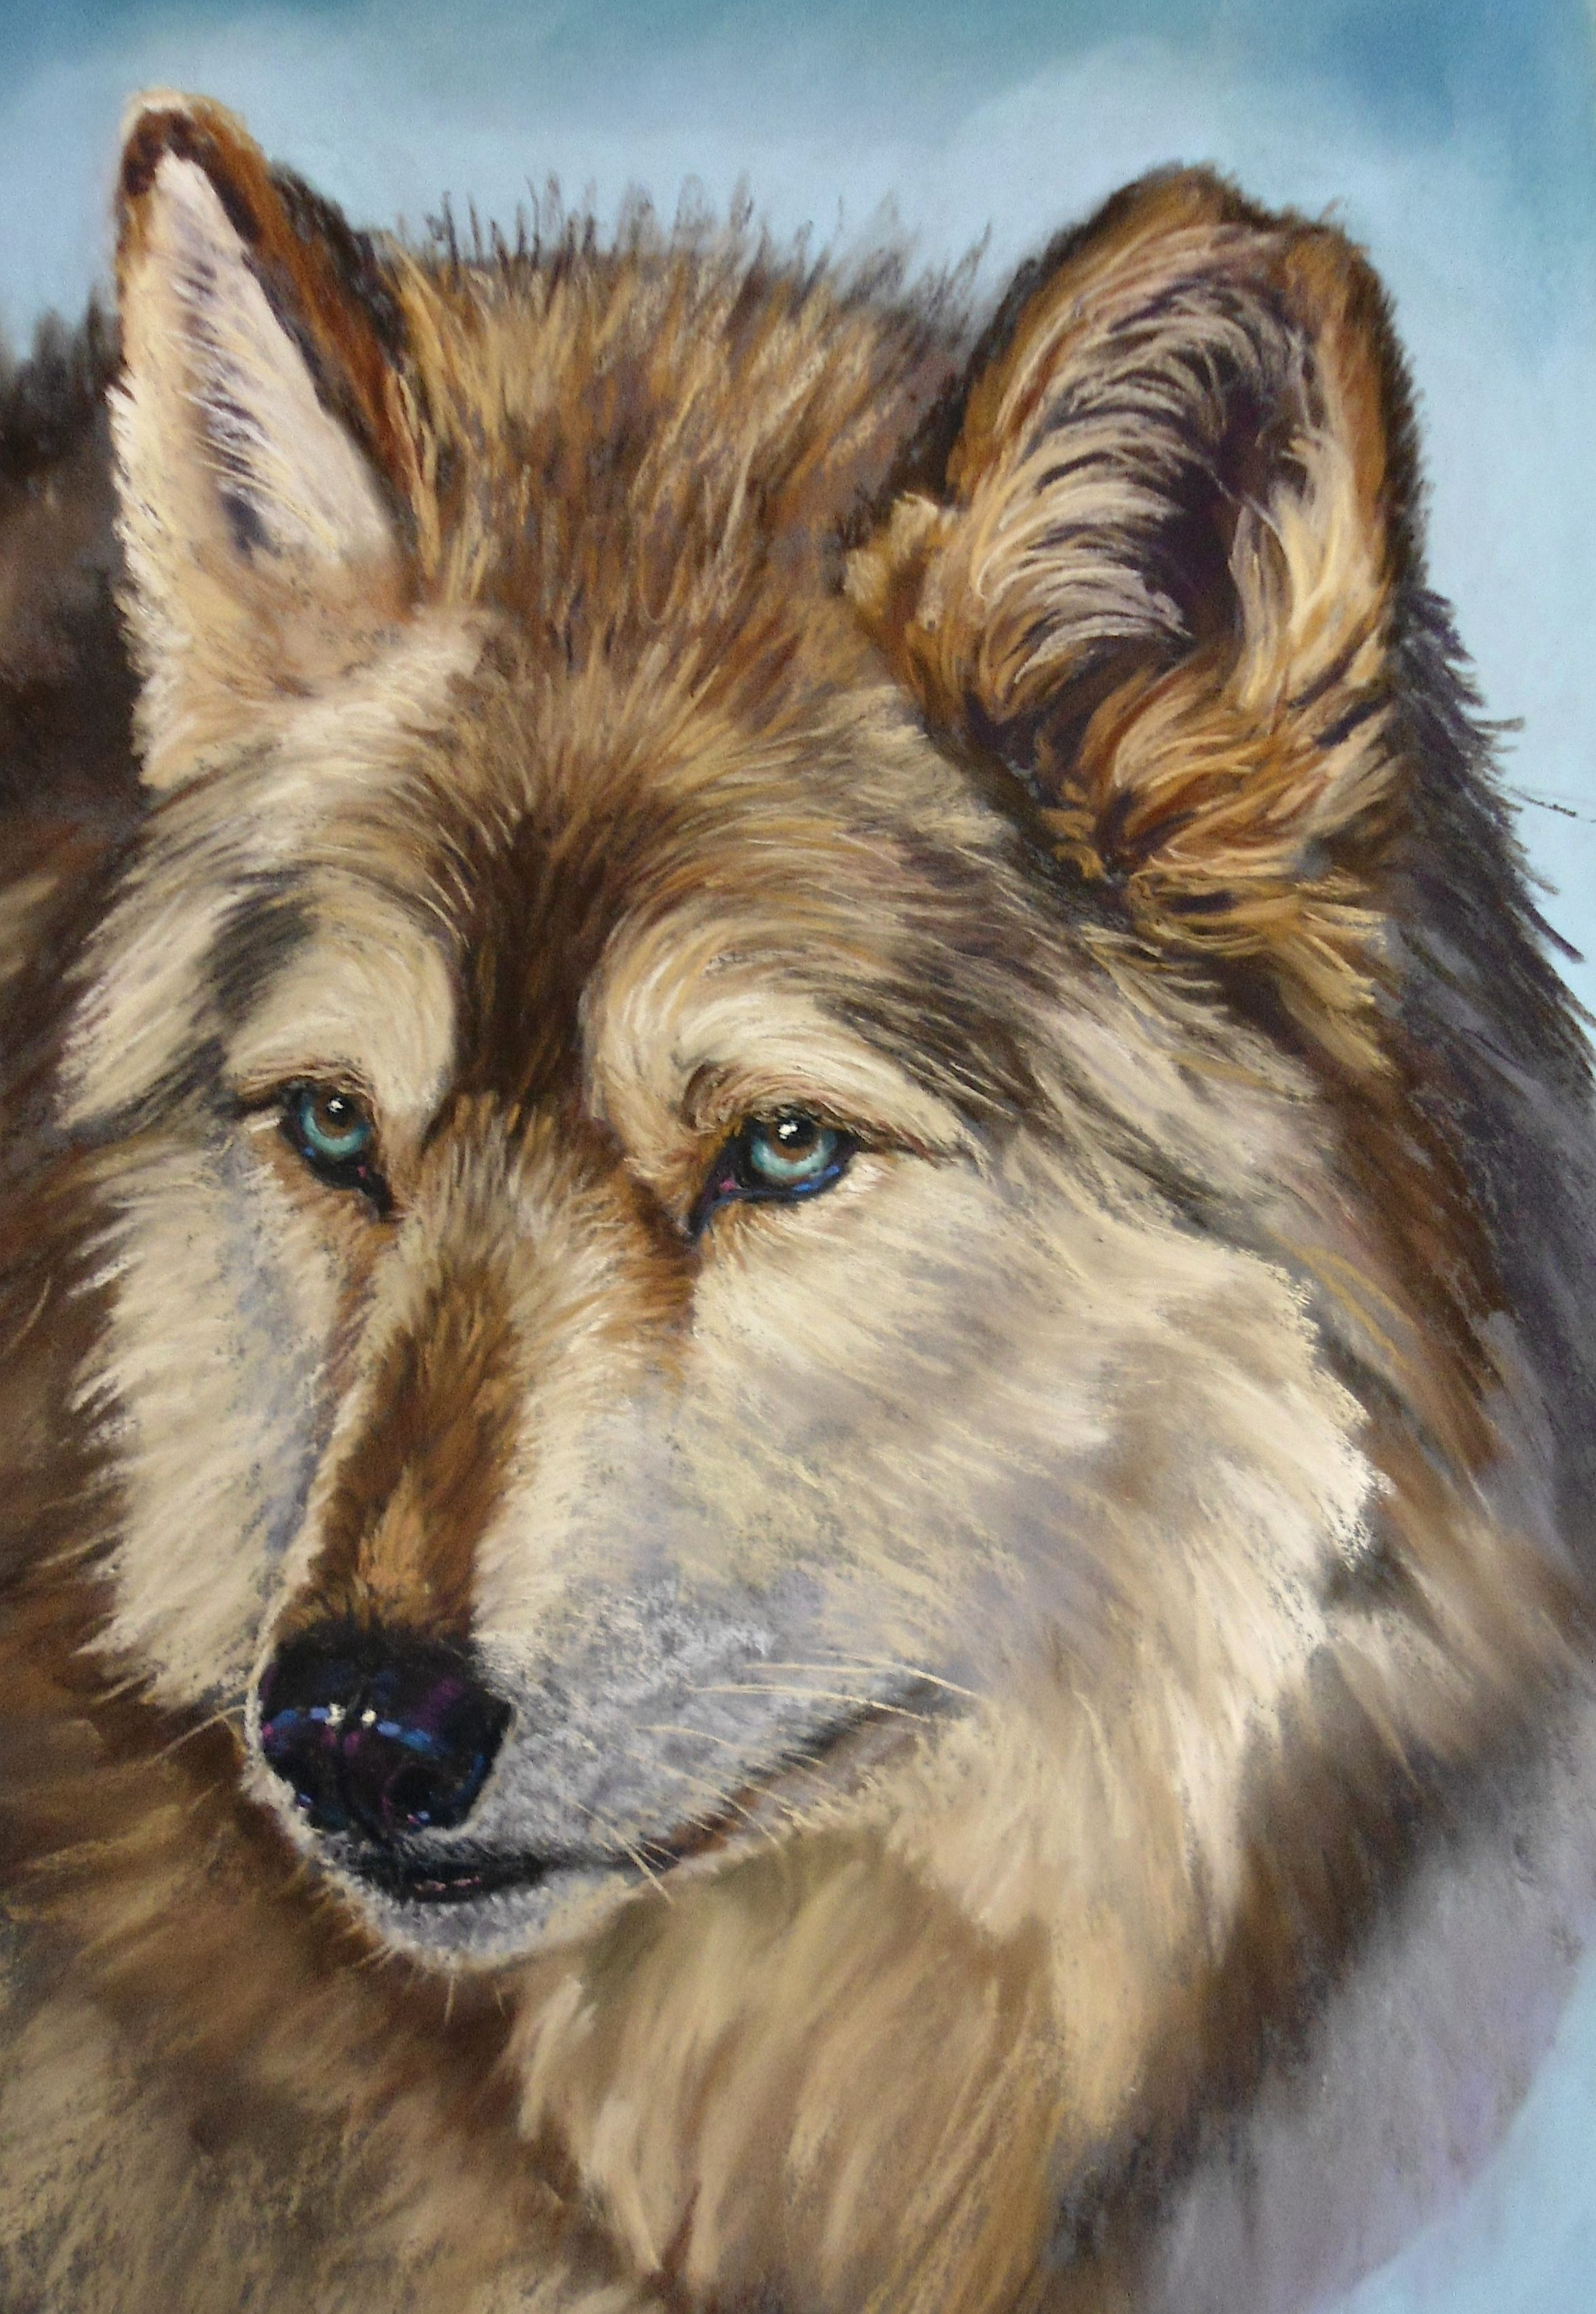 Look at this incredible portrait of a wolf by Catherine Inglis in pastels. Available now on ArtTutor.com